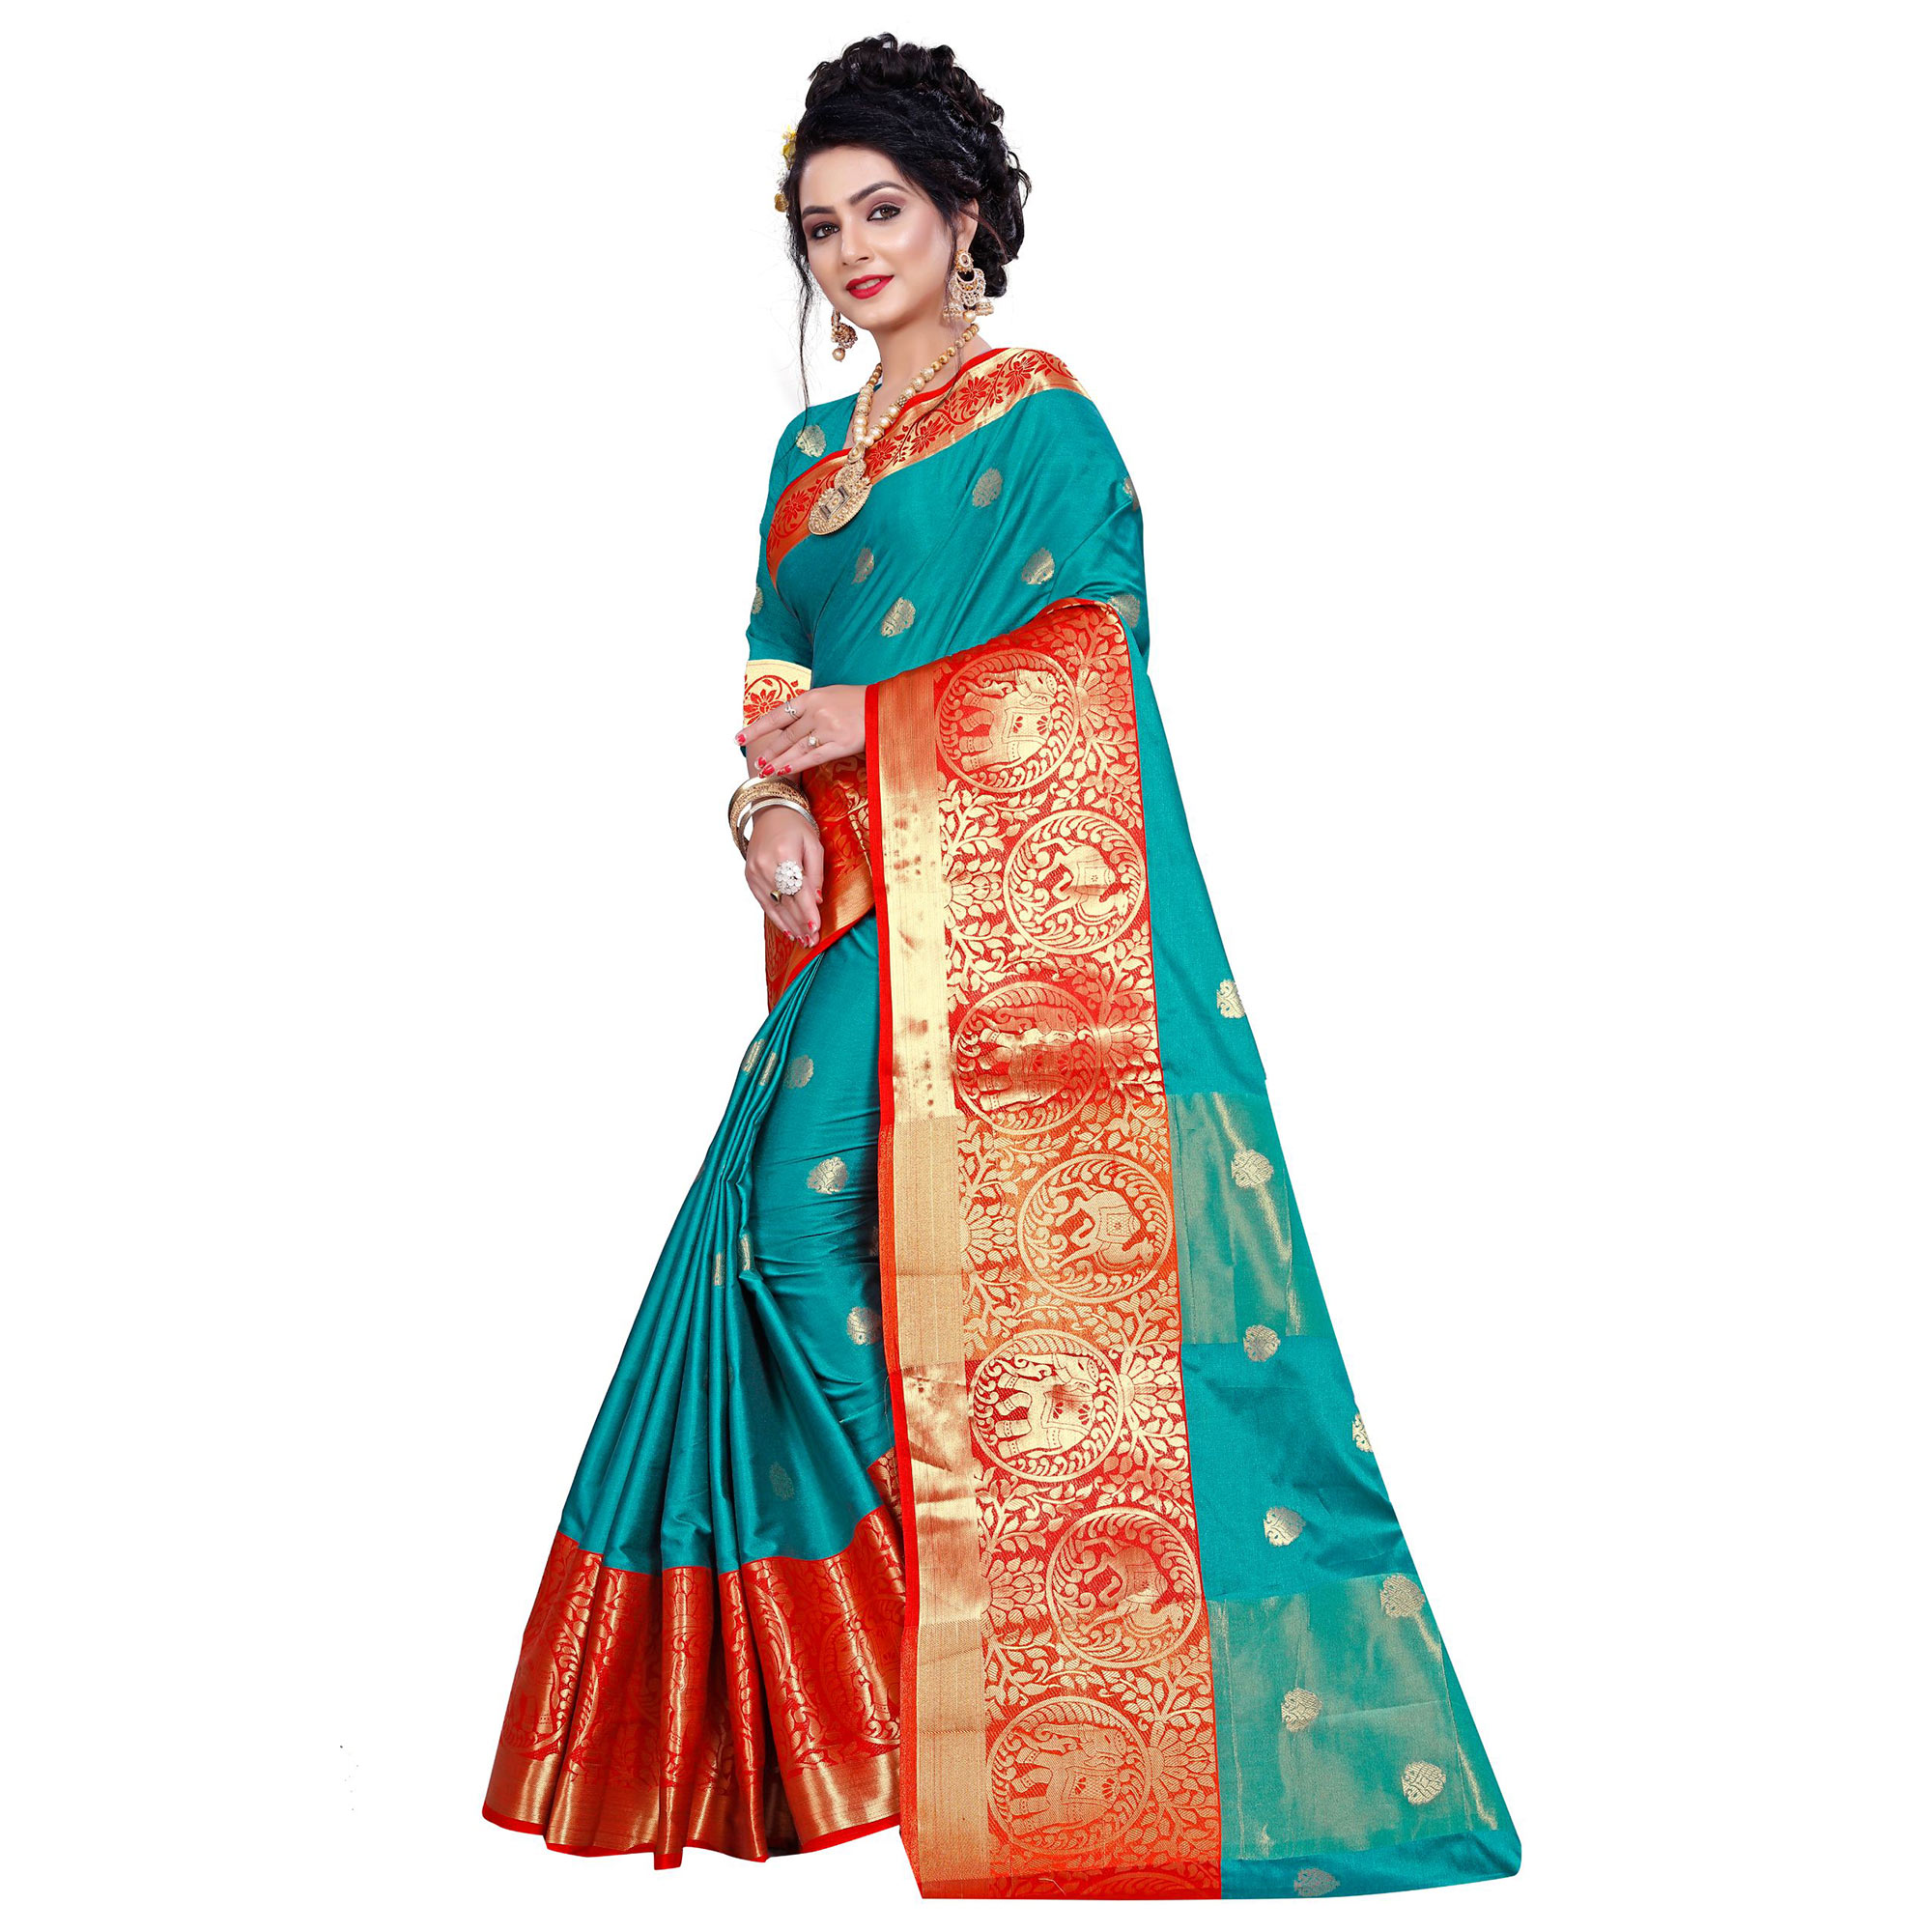 Radiant Turquoise Green Colored Festive Wear Woven Cotton Silk Saree